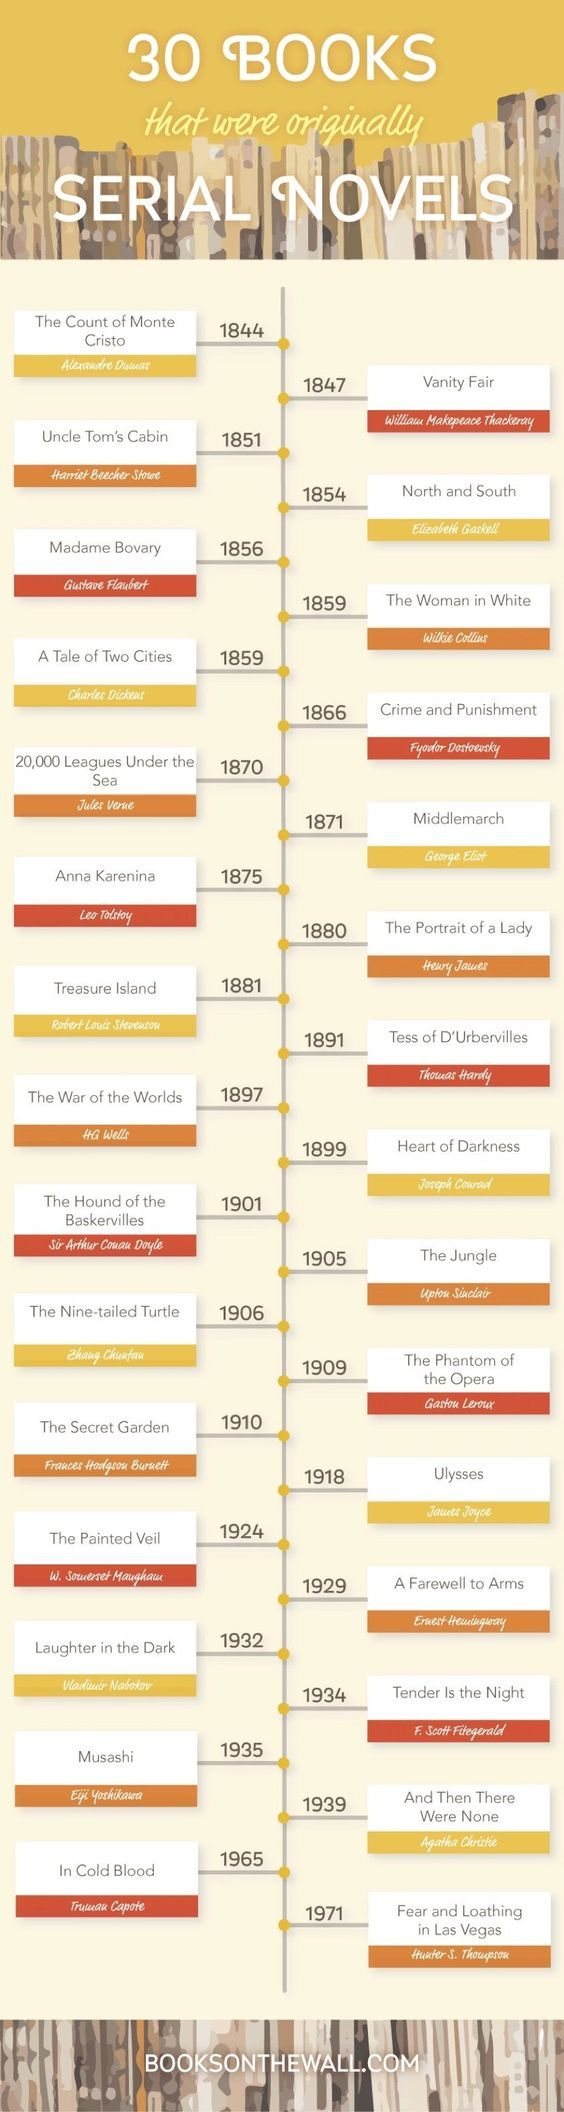 30 Books That Were Originally Serial Novels (infographic)